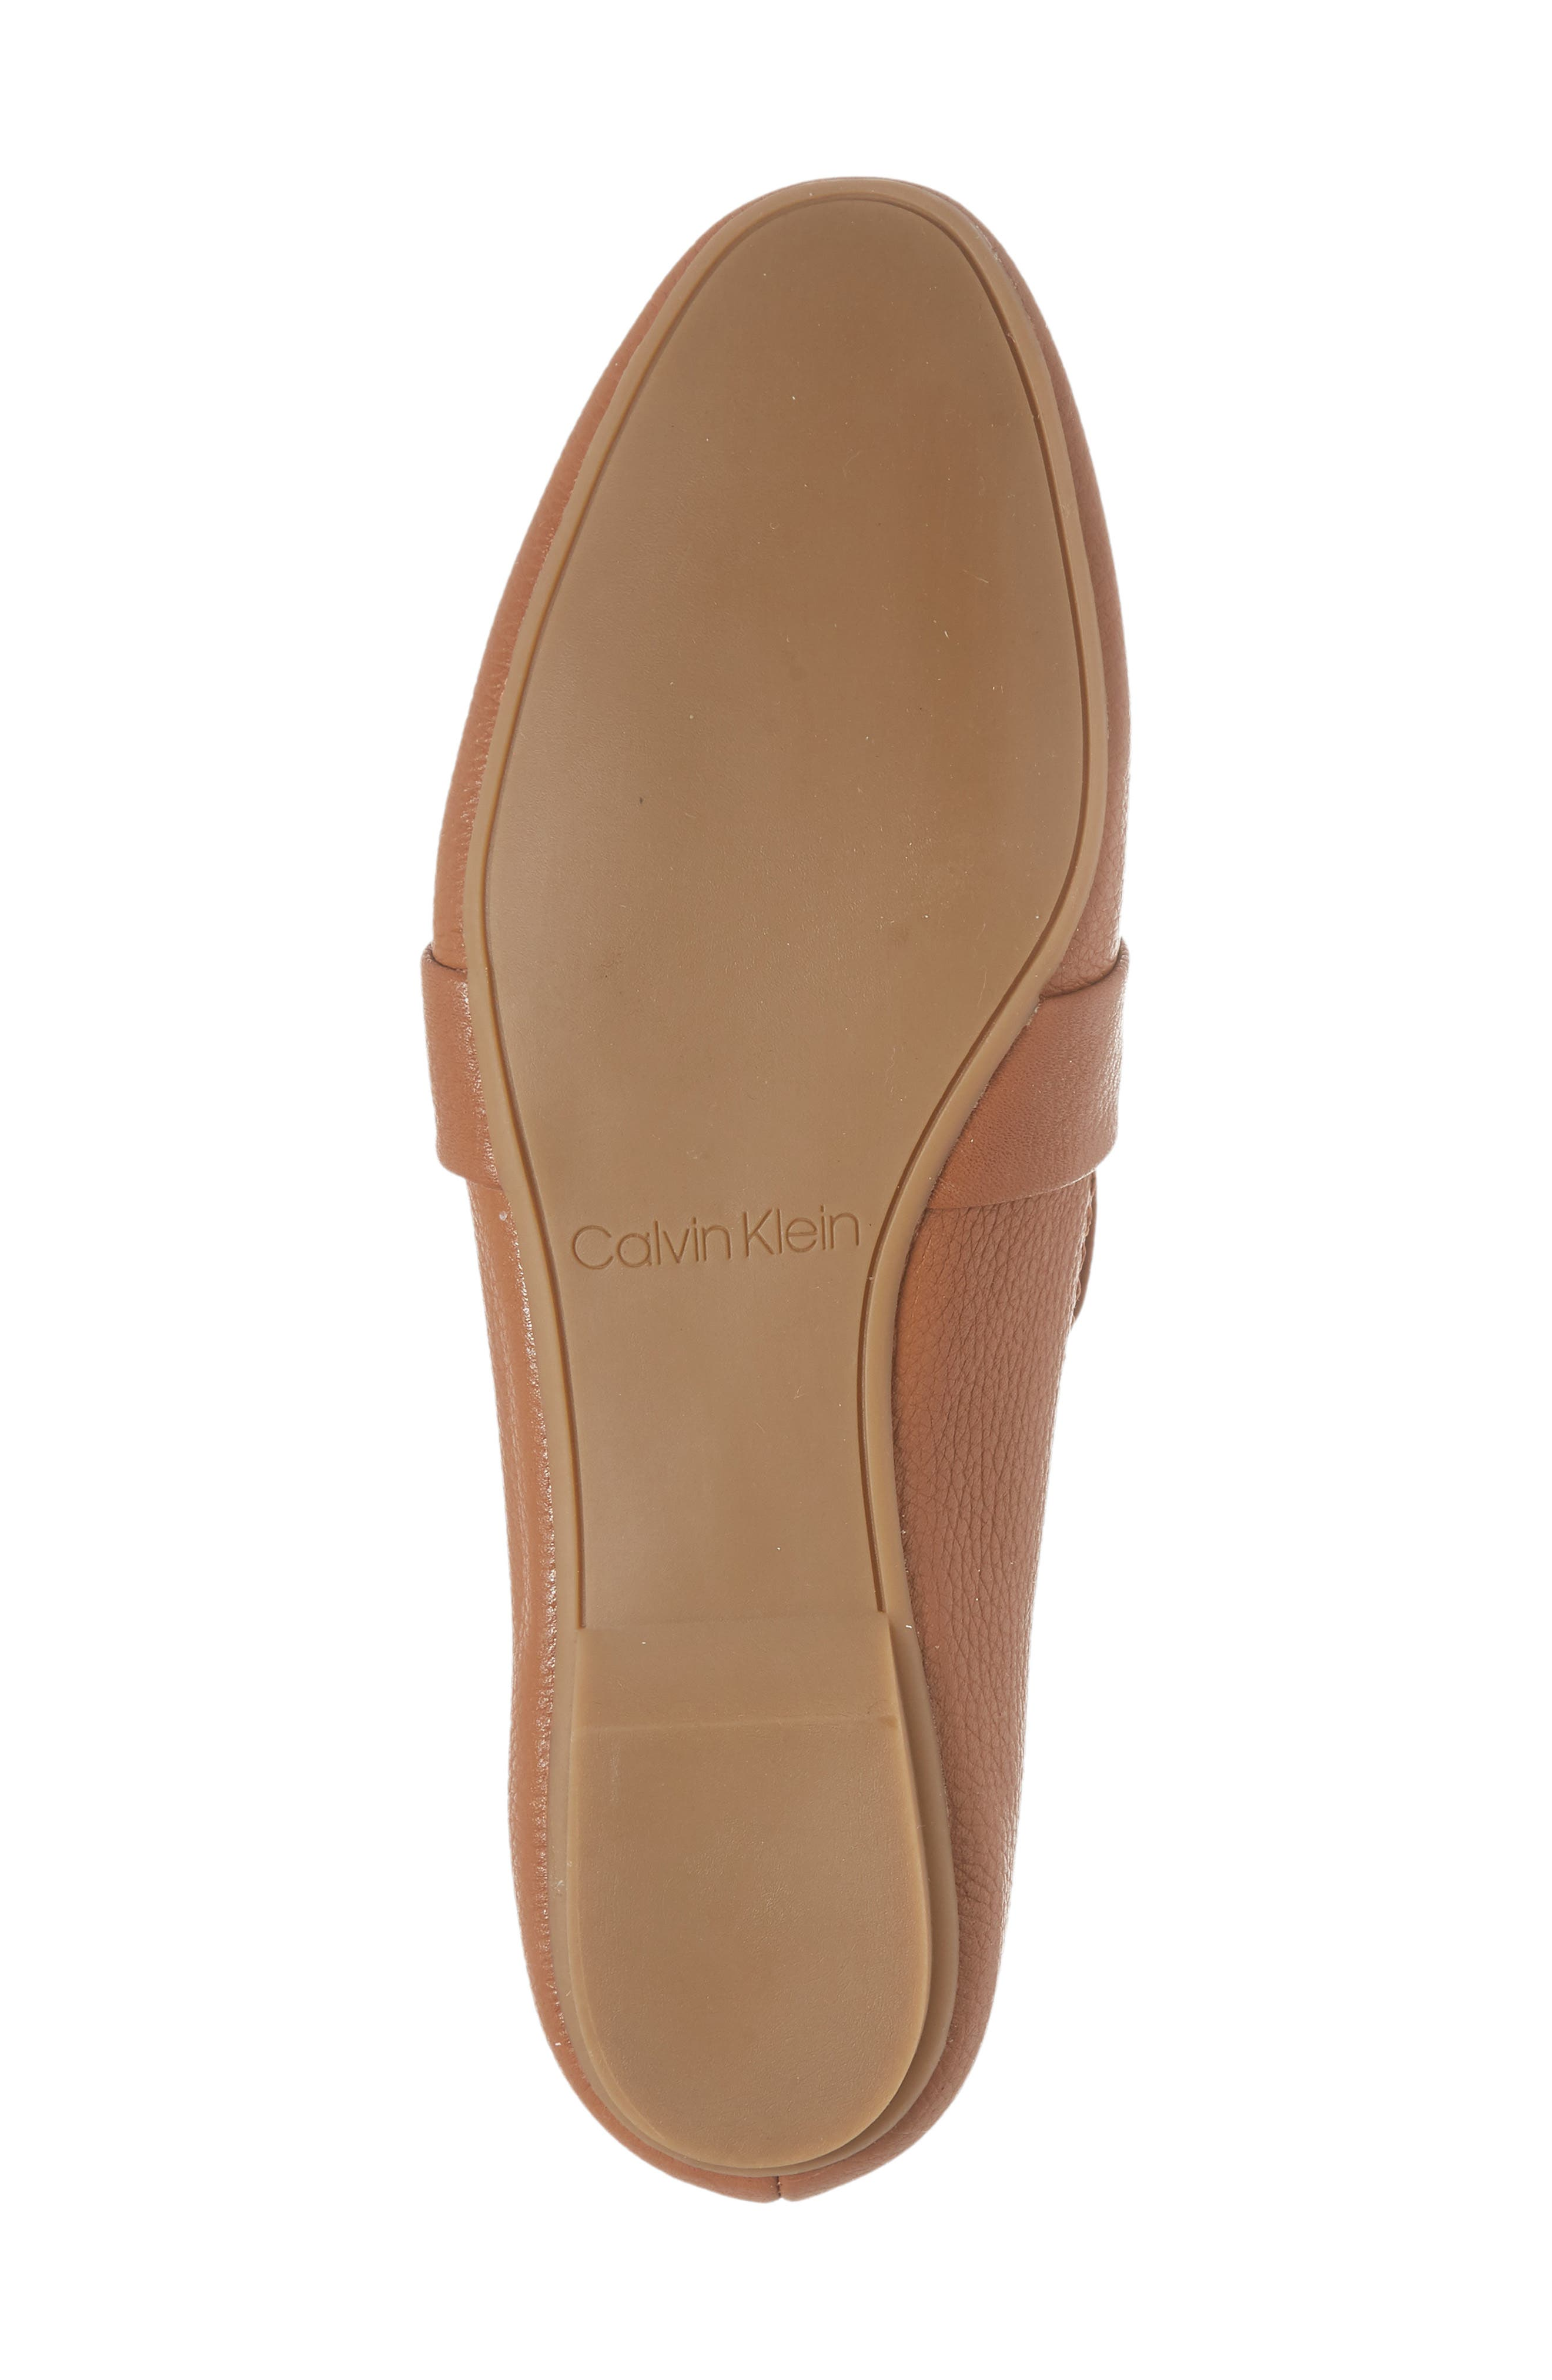 Orianna Loafer,                             Alternate thumbnail 6, color,                             COGNAC LEATHER